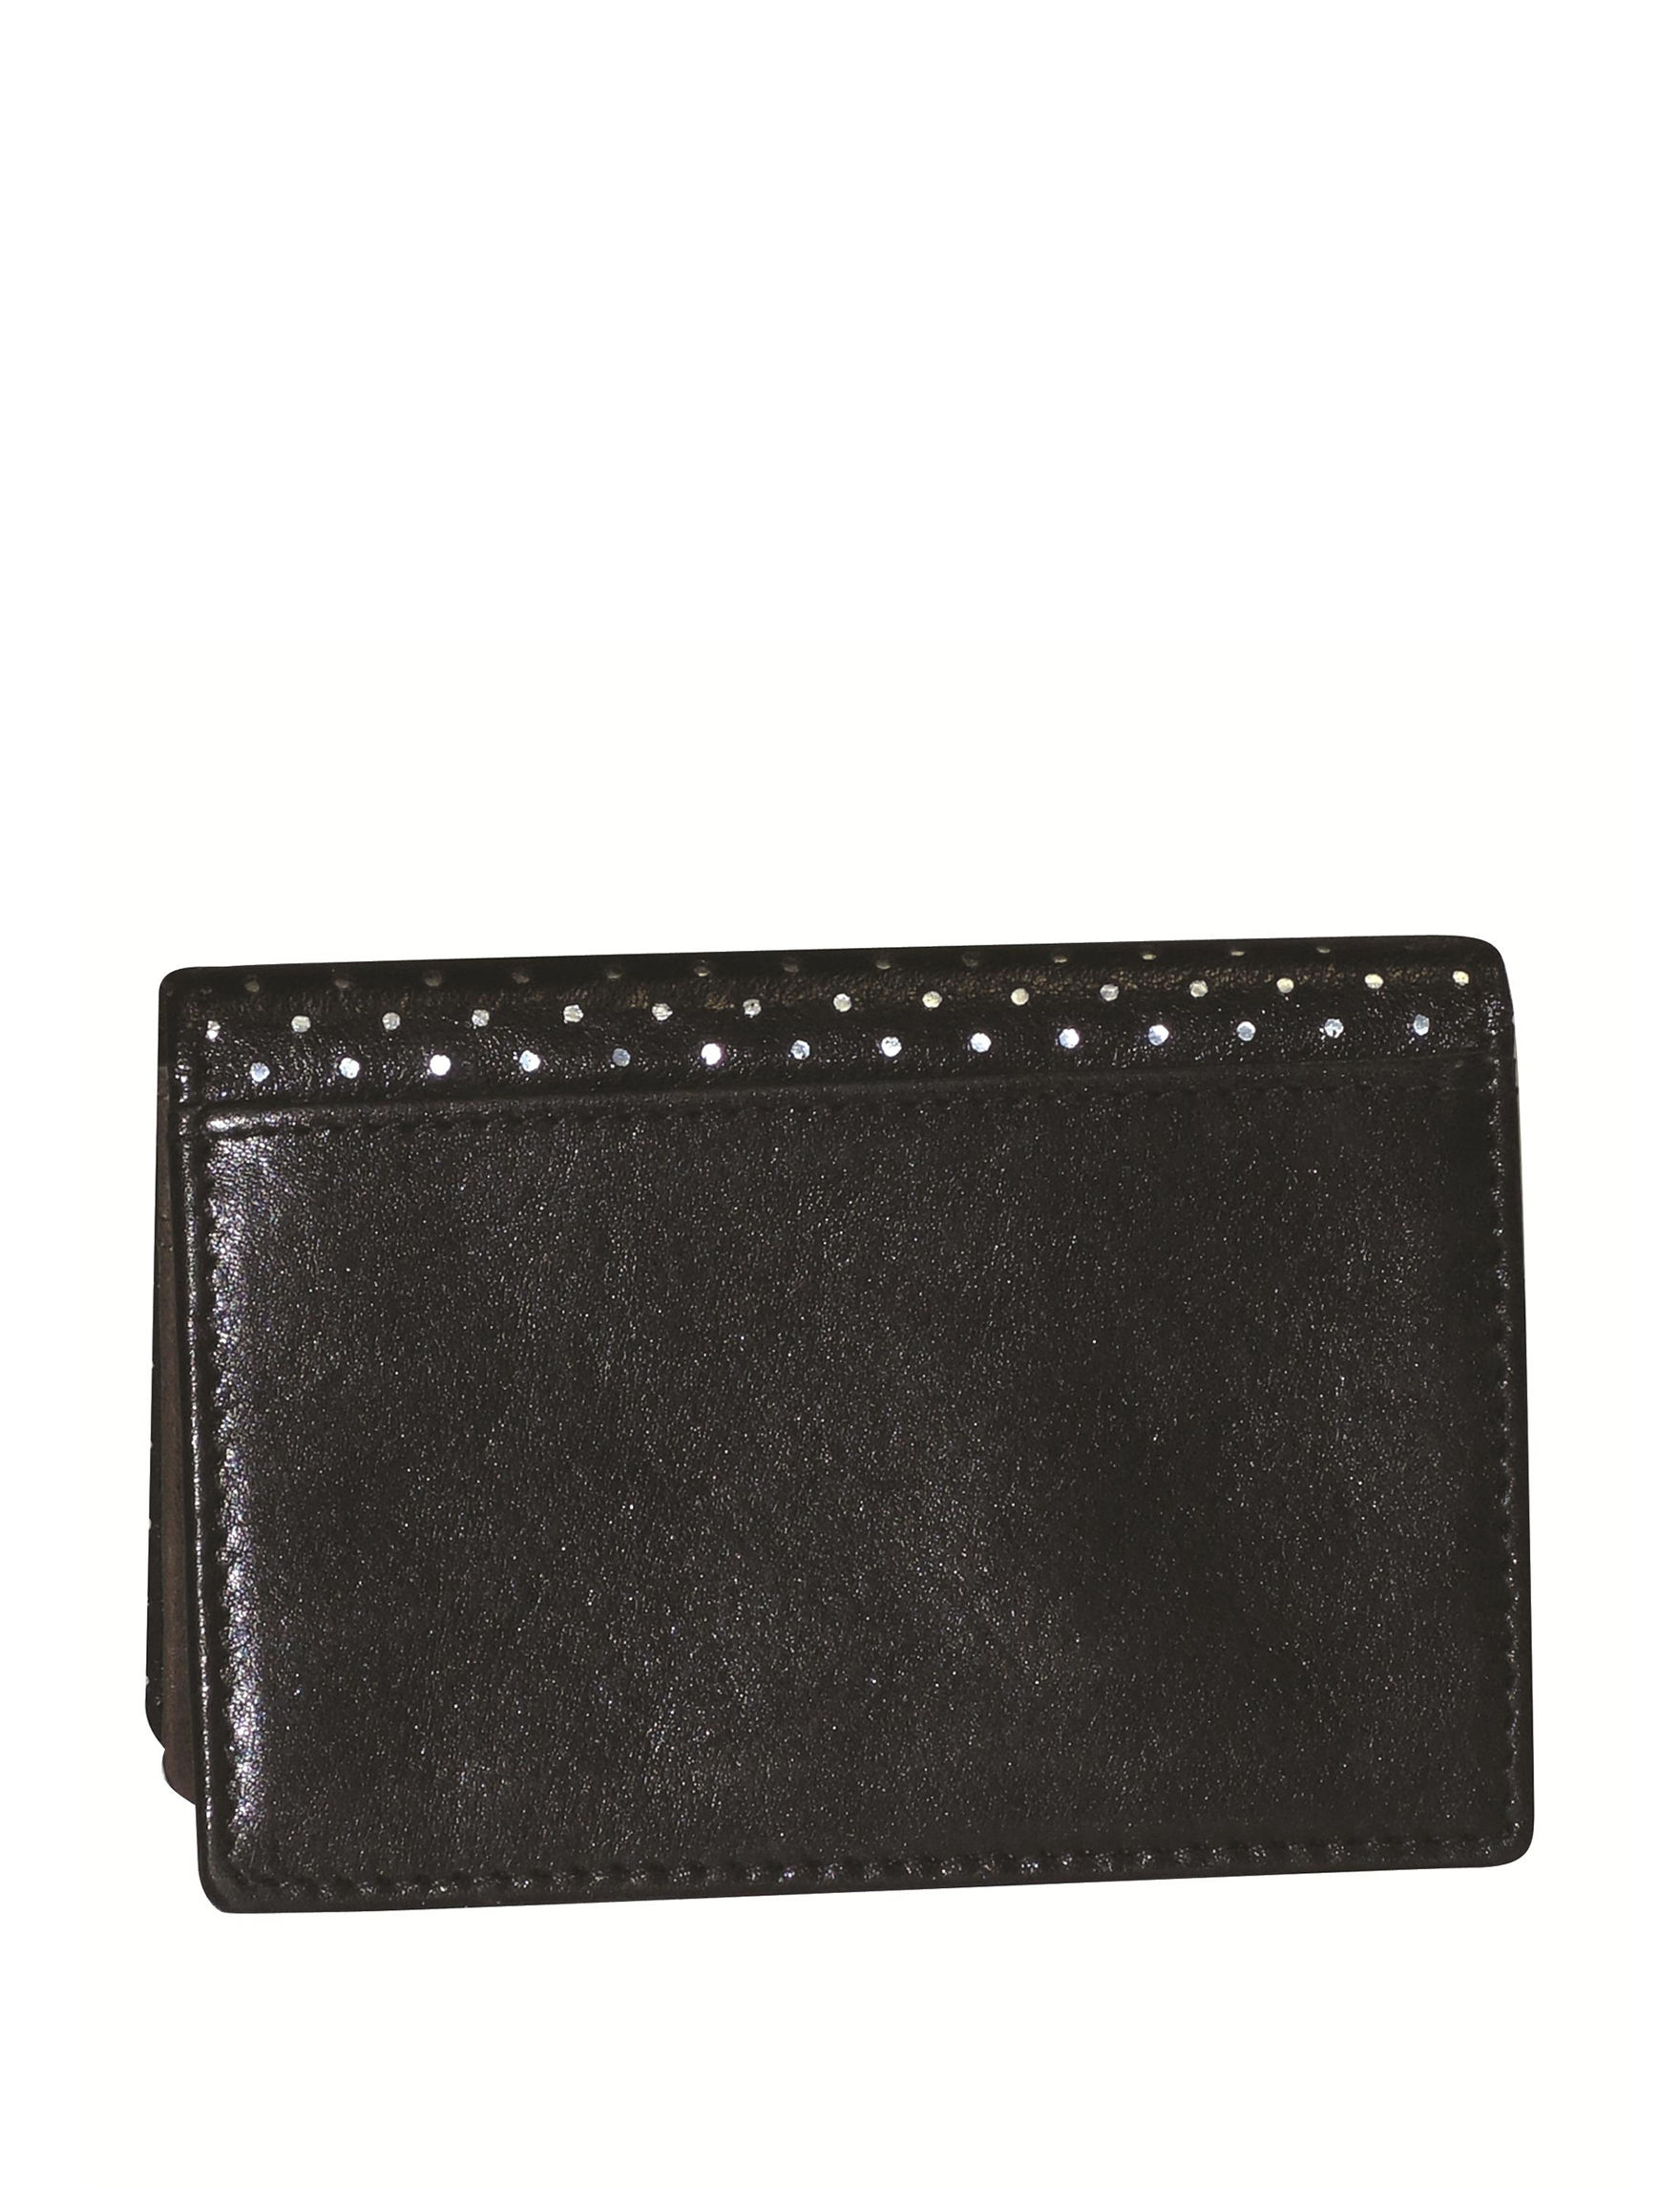 DOPP Black Bi-fold Wallets